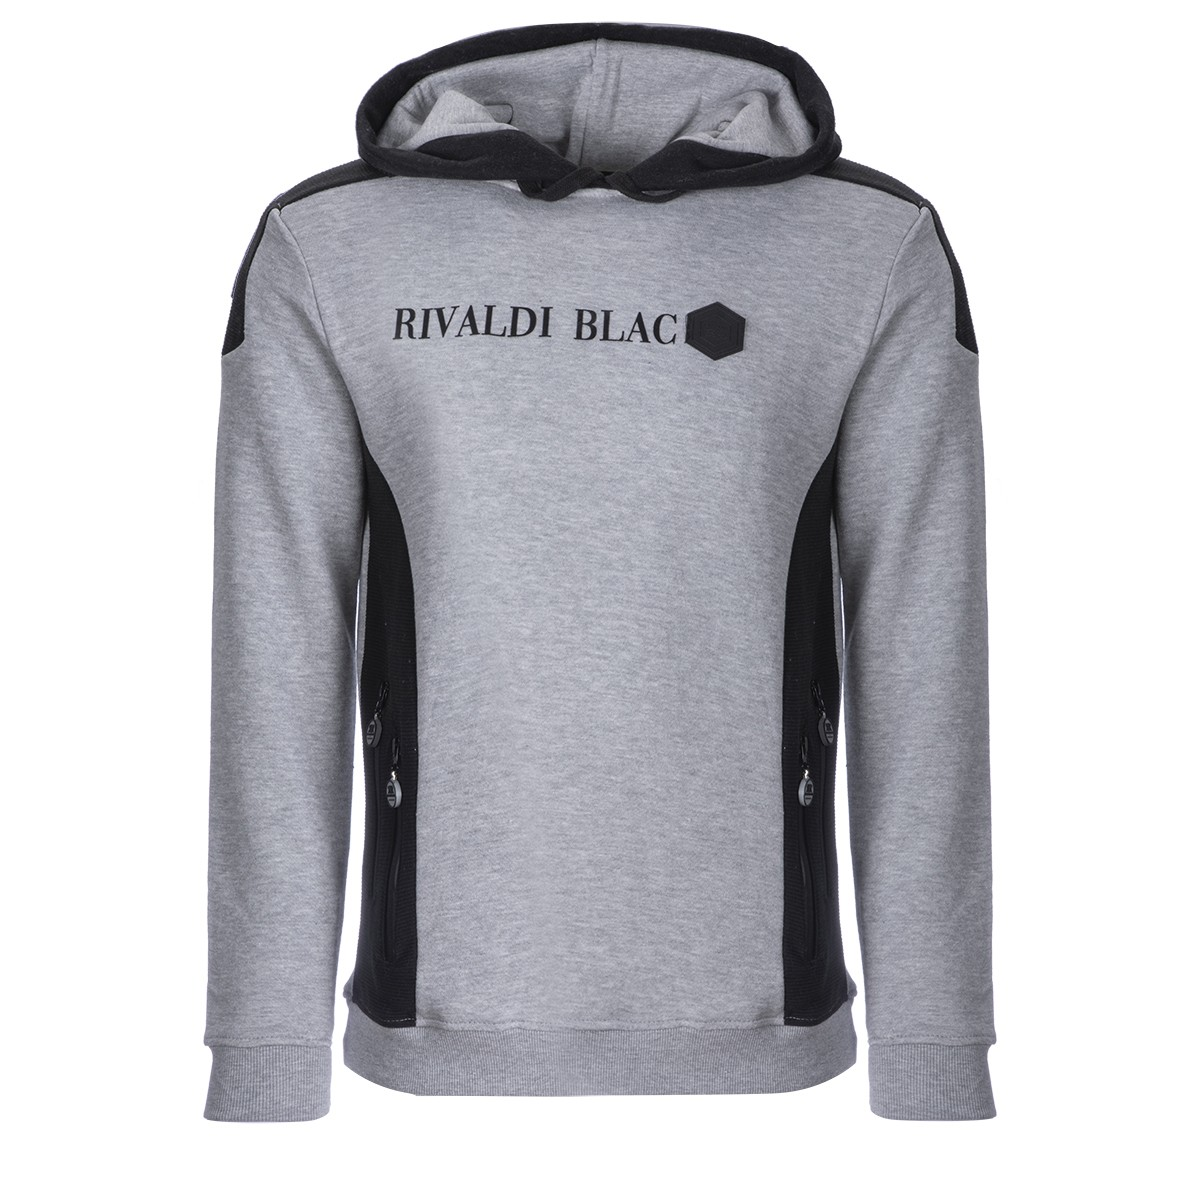 Sweat-shirt homme gris